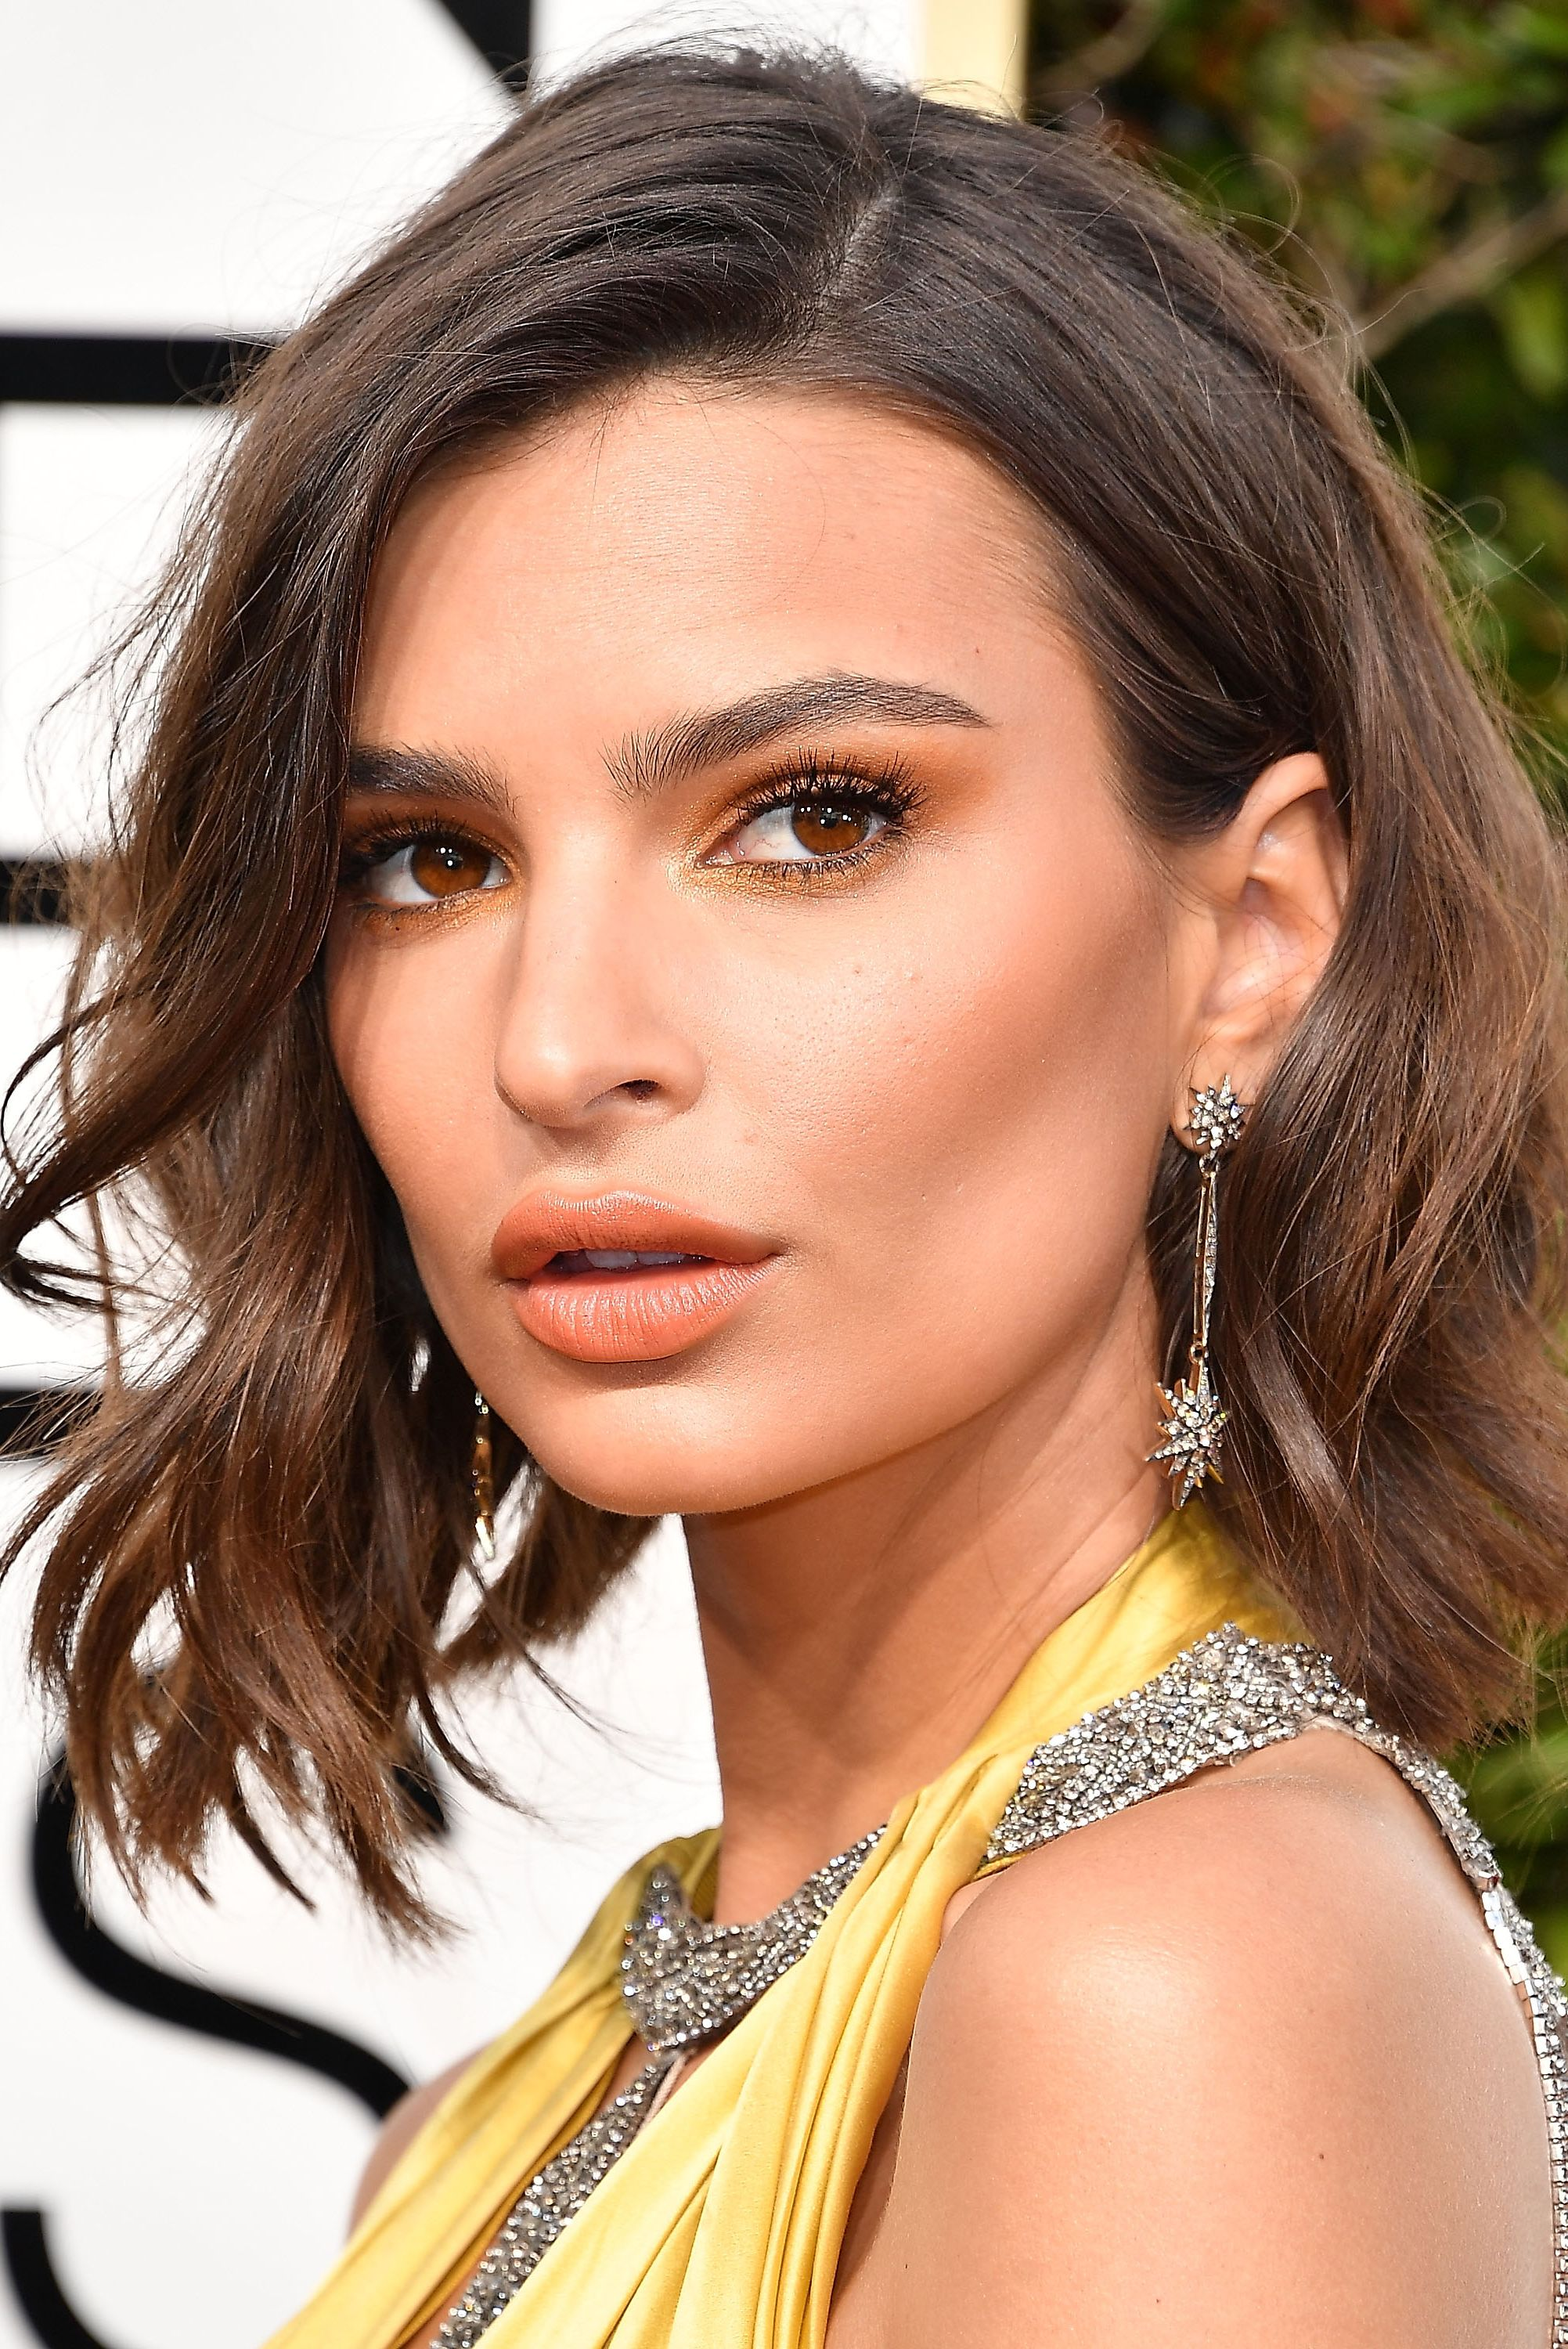 Emily Ratajkowski Consider supermodel Emily Ratajkowski's I-just-left-the-beach waves a no-brainer when it comes to bobs. It's really hard to mess this style up.